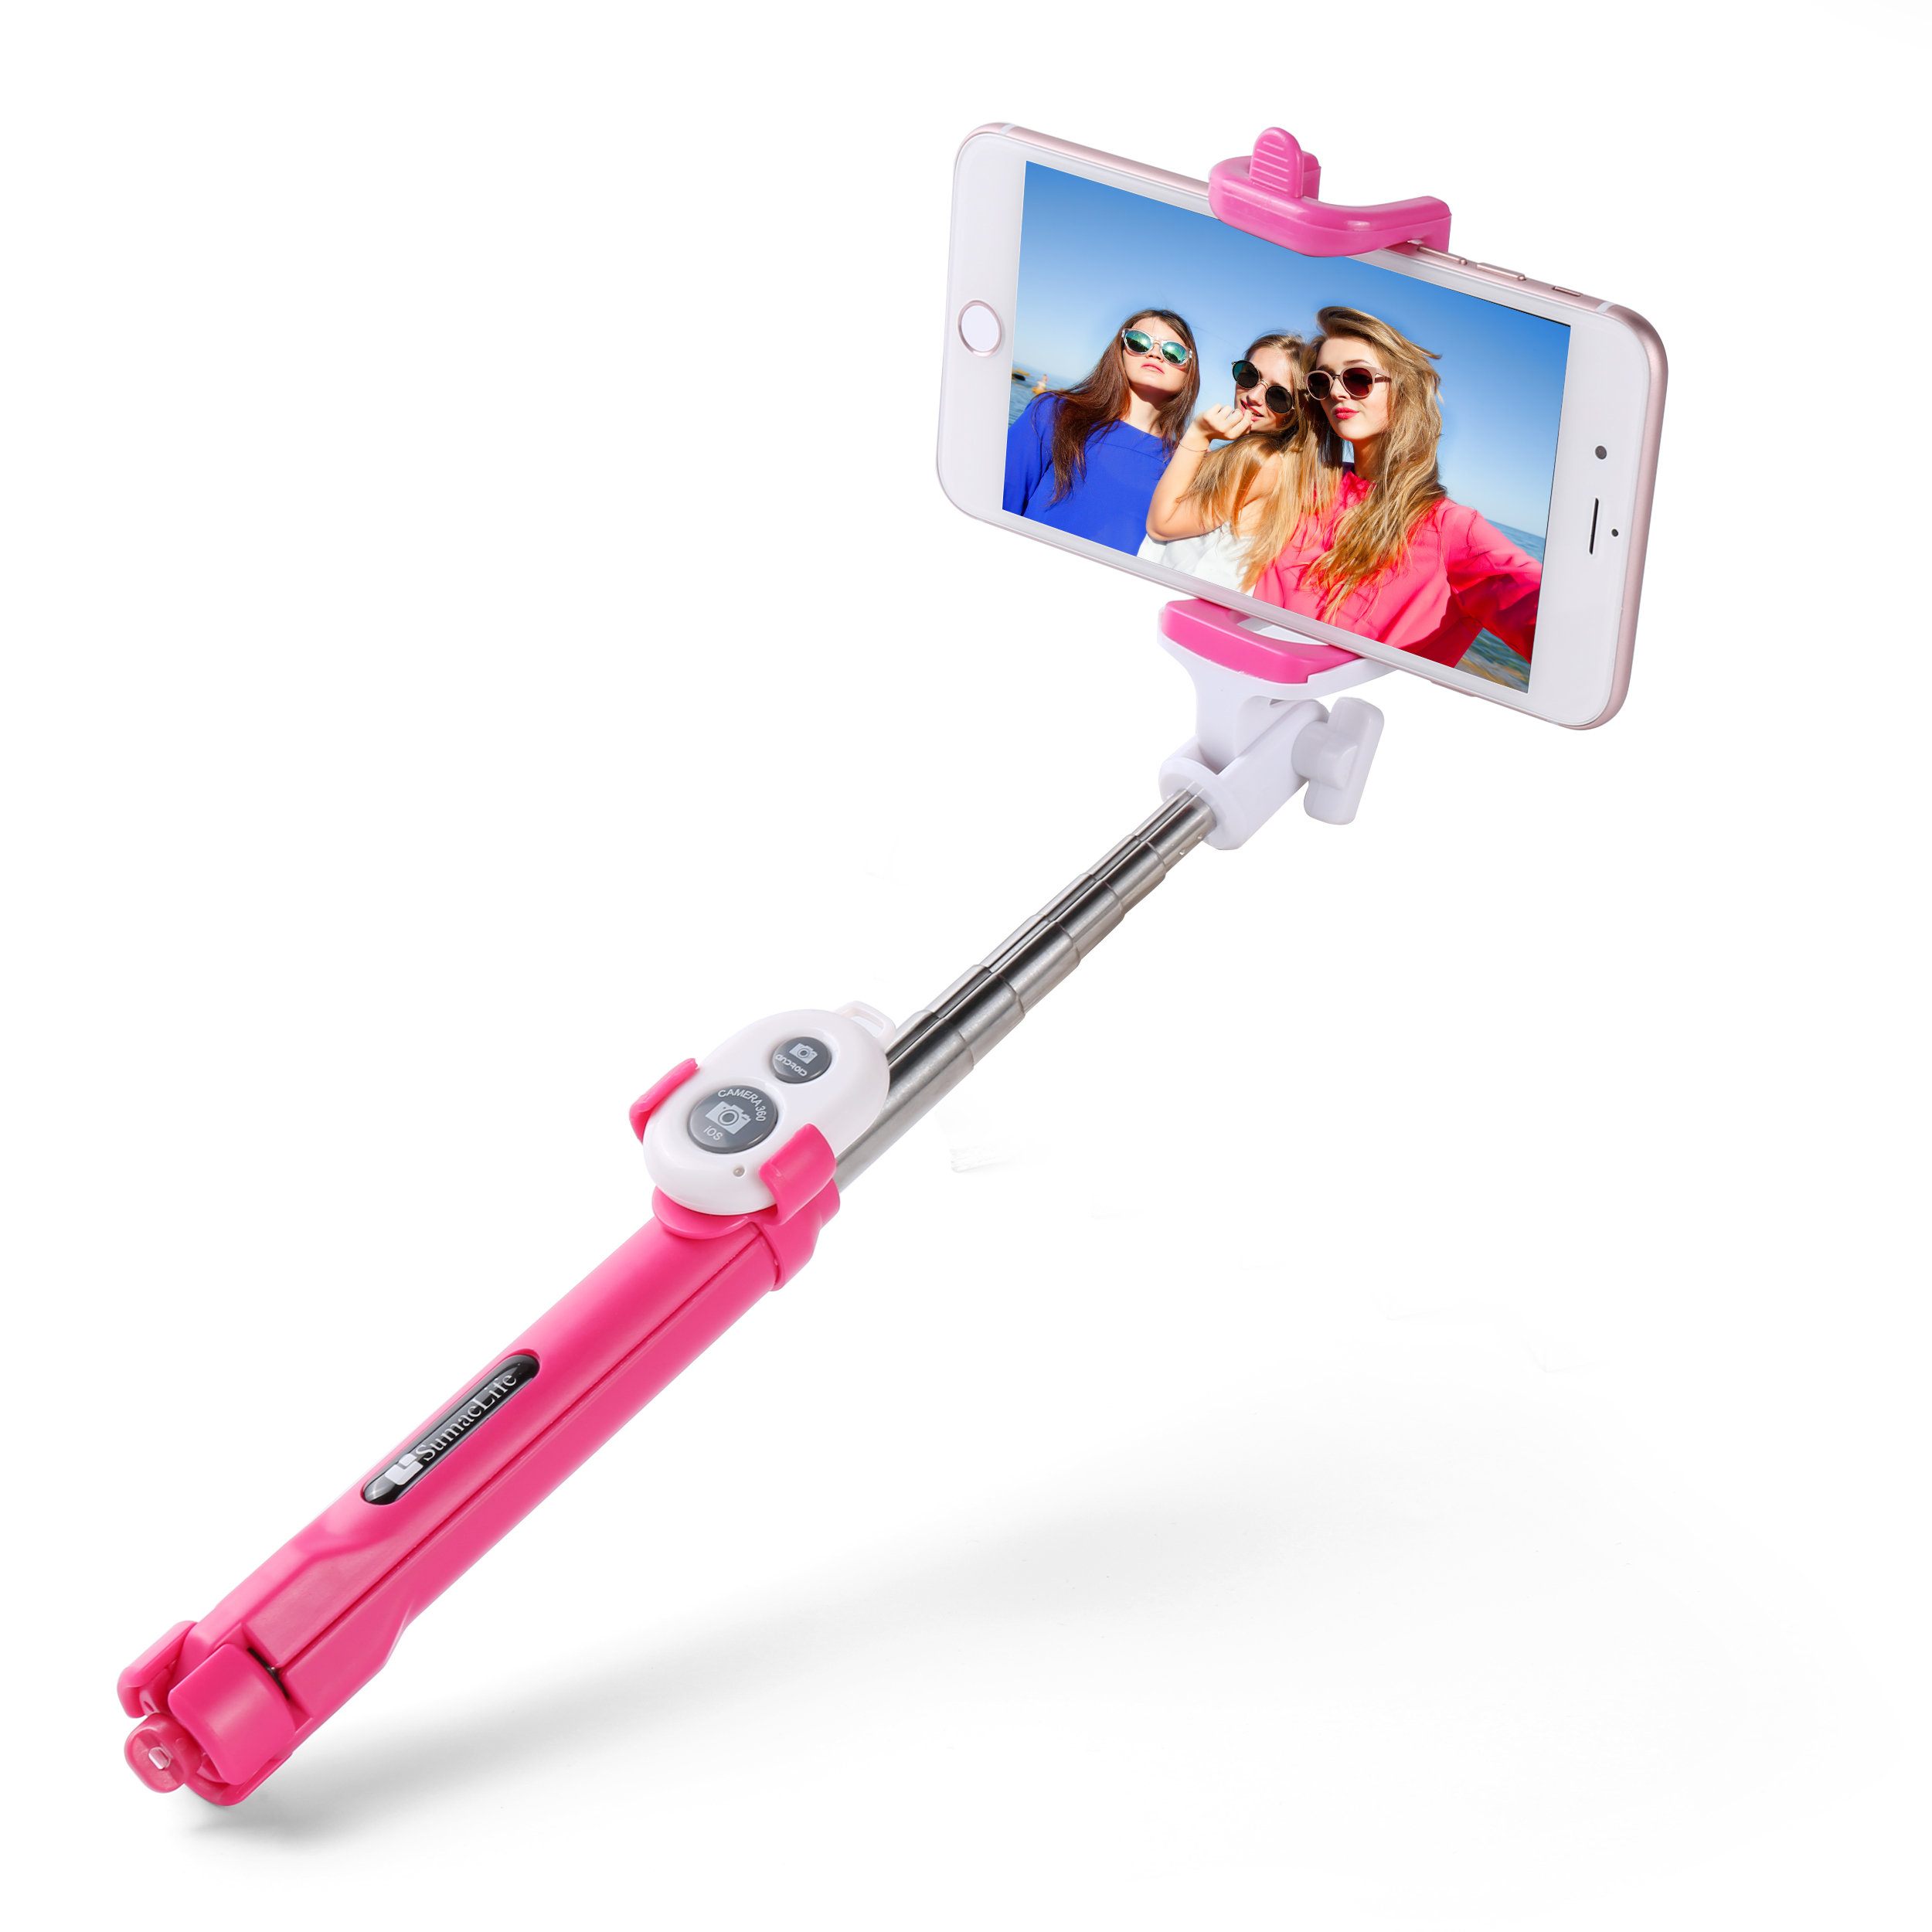 Compact Collapsible Universal Selfie Stick and Tripod with Removable Remote Control for iPhone X/8/7, Samsung S9/S8/S7, Google Pixel 2 and More